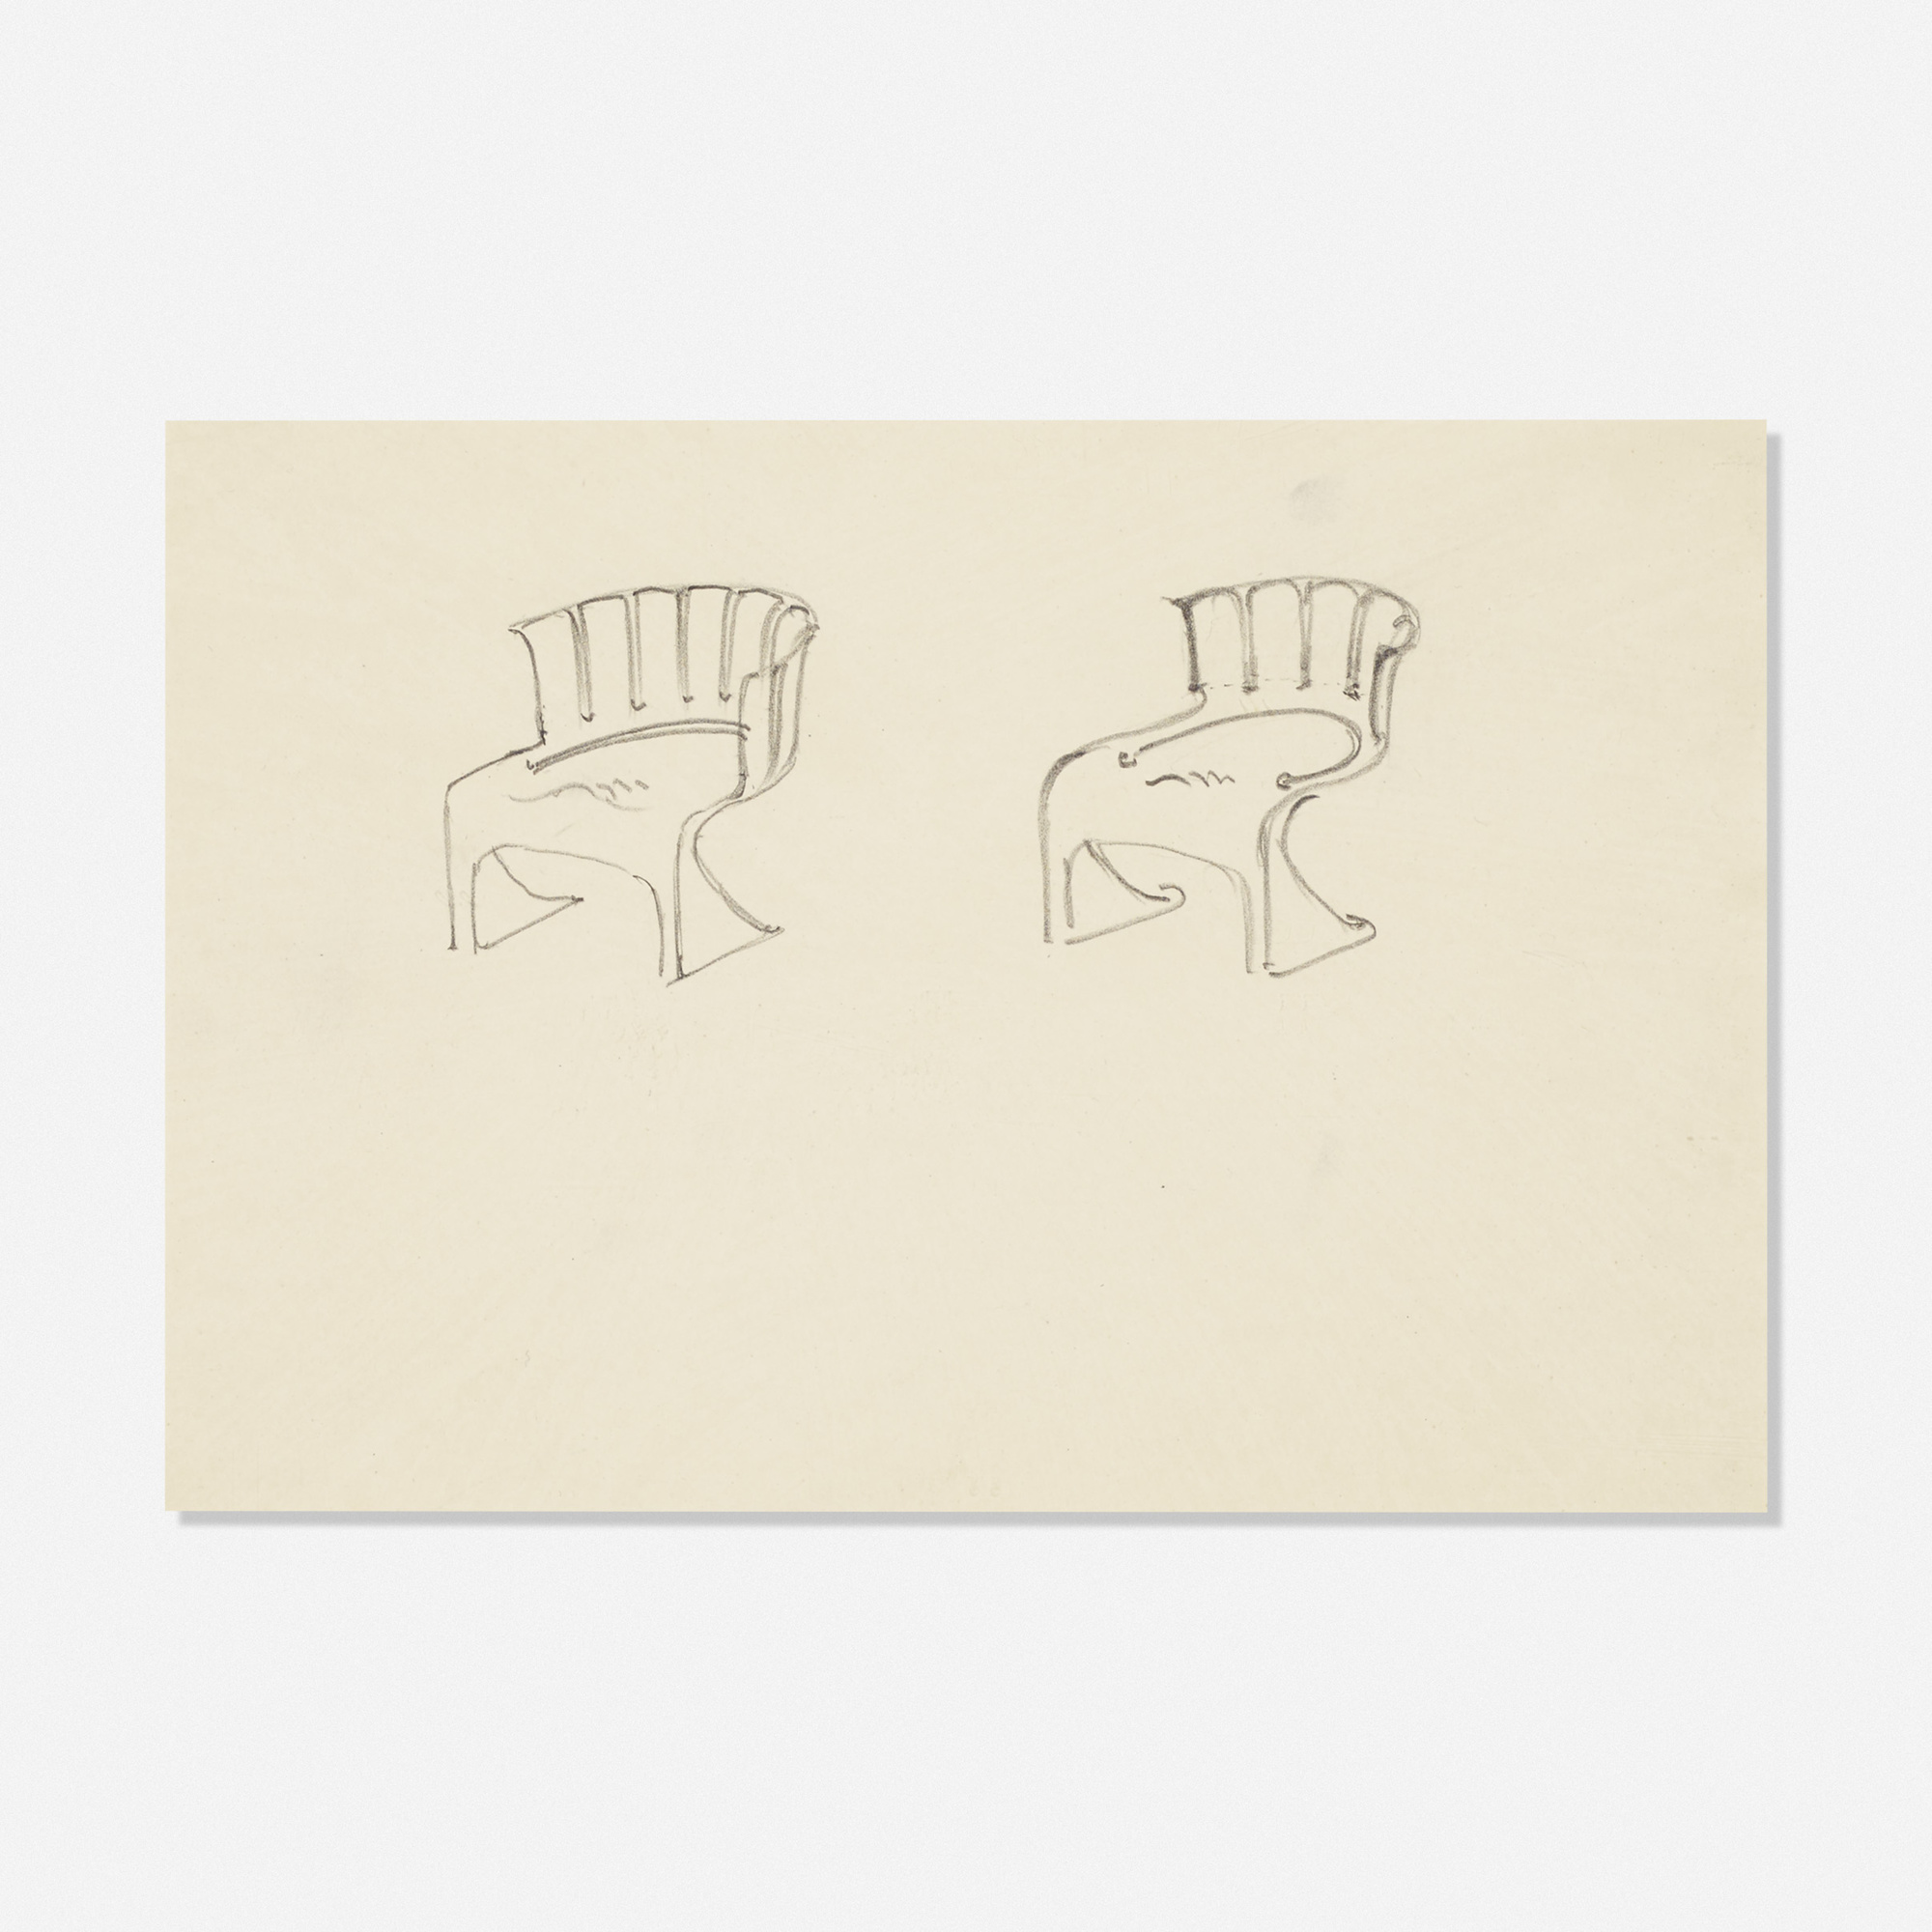 235: LUDWIG MIES VAN DER ROHE, study for shell-shaped chairs